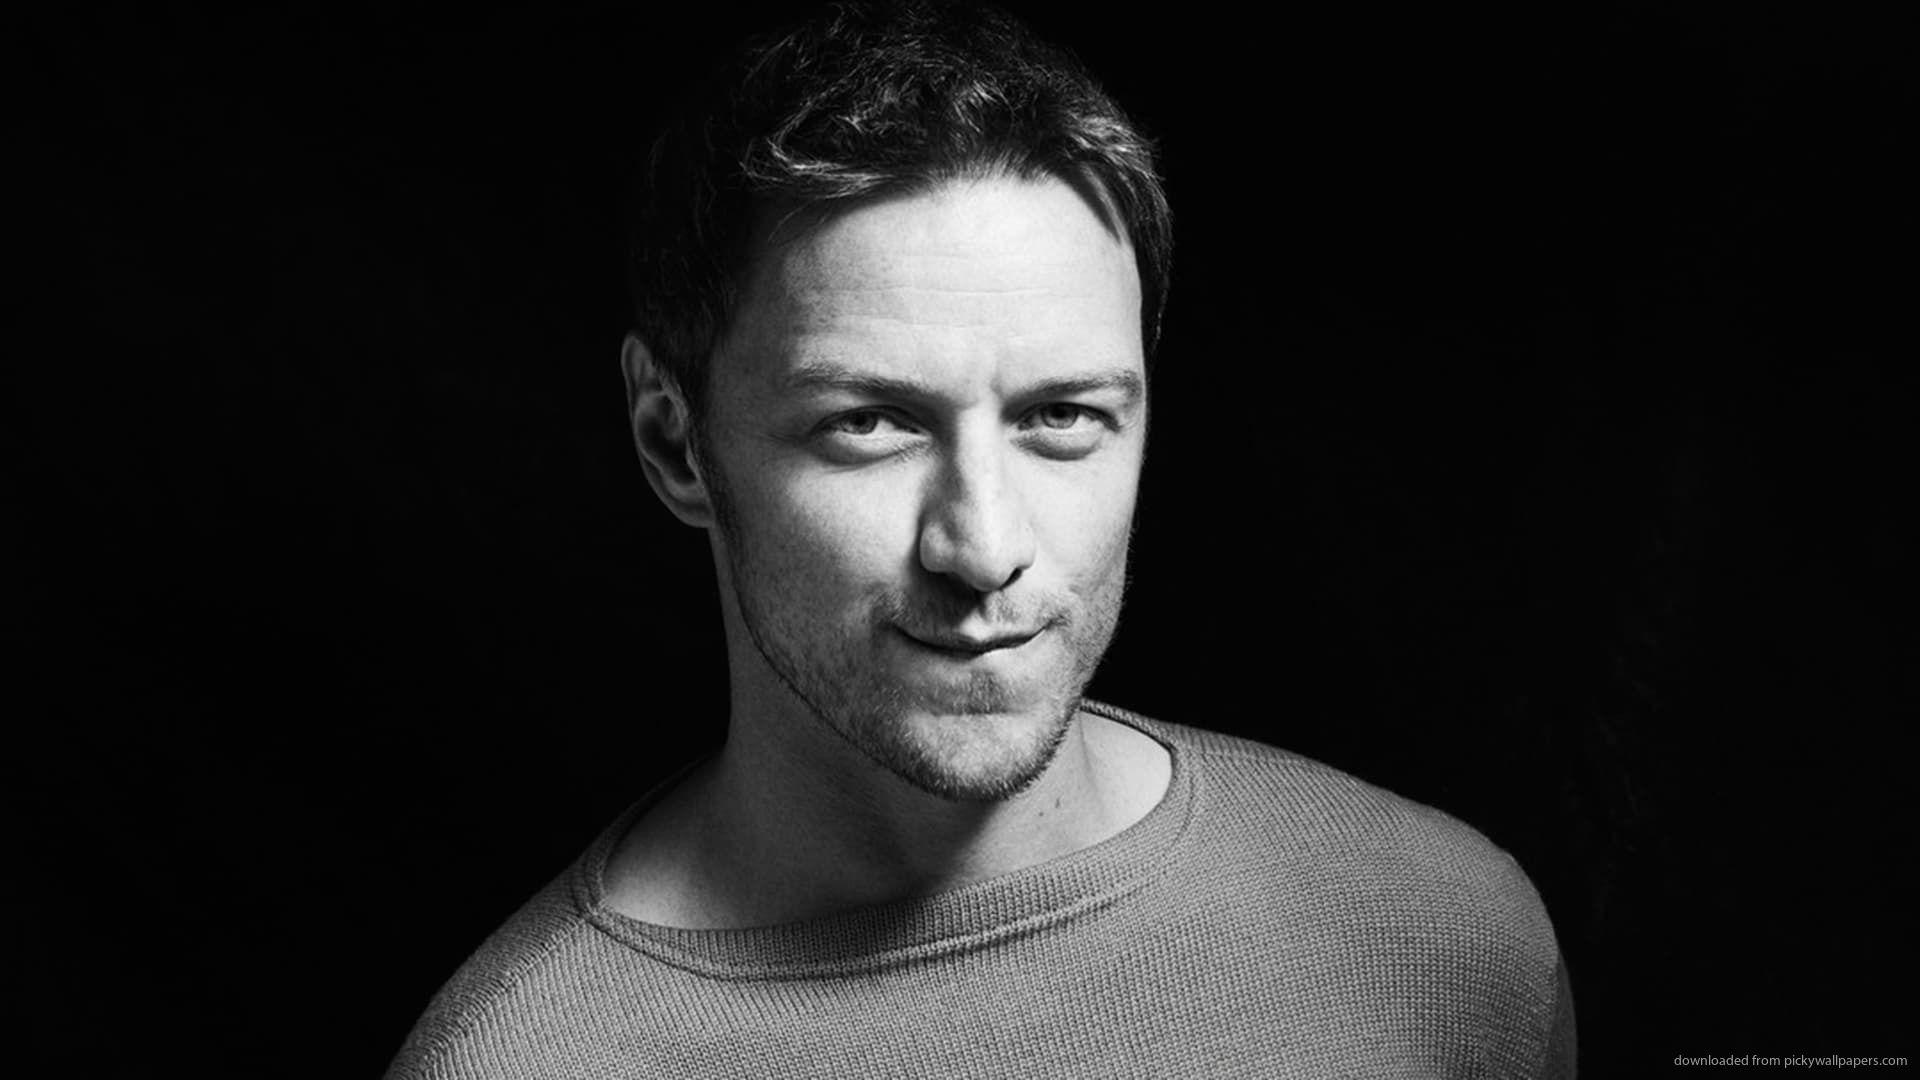 1920x1080 Monochrome James Mcavoy Desktop Wallpapers Wallpapers